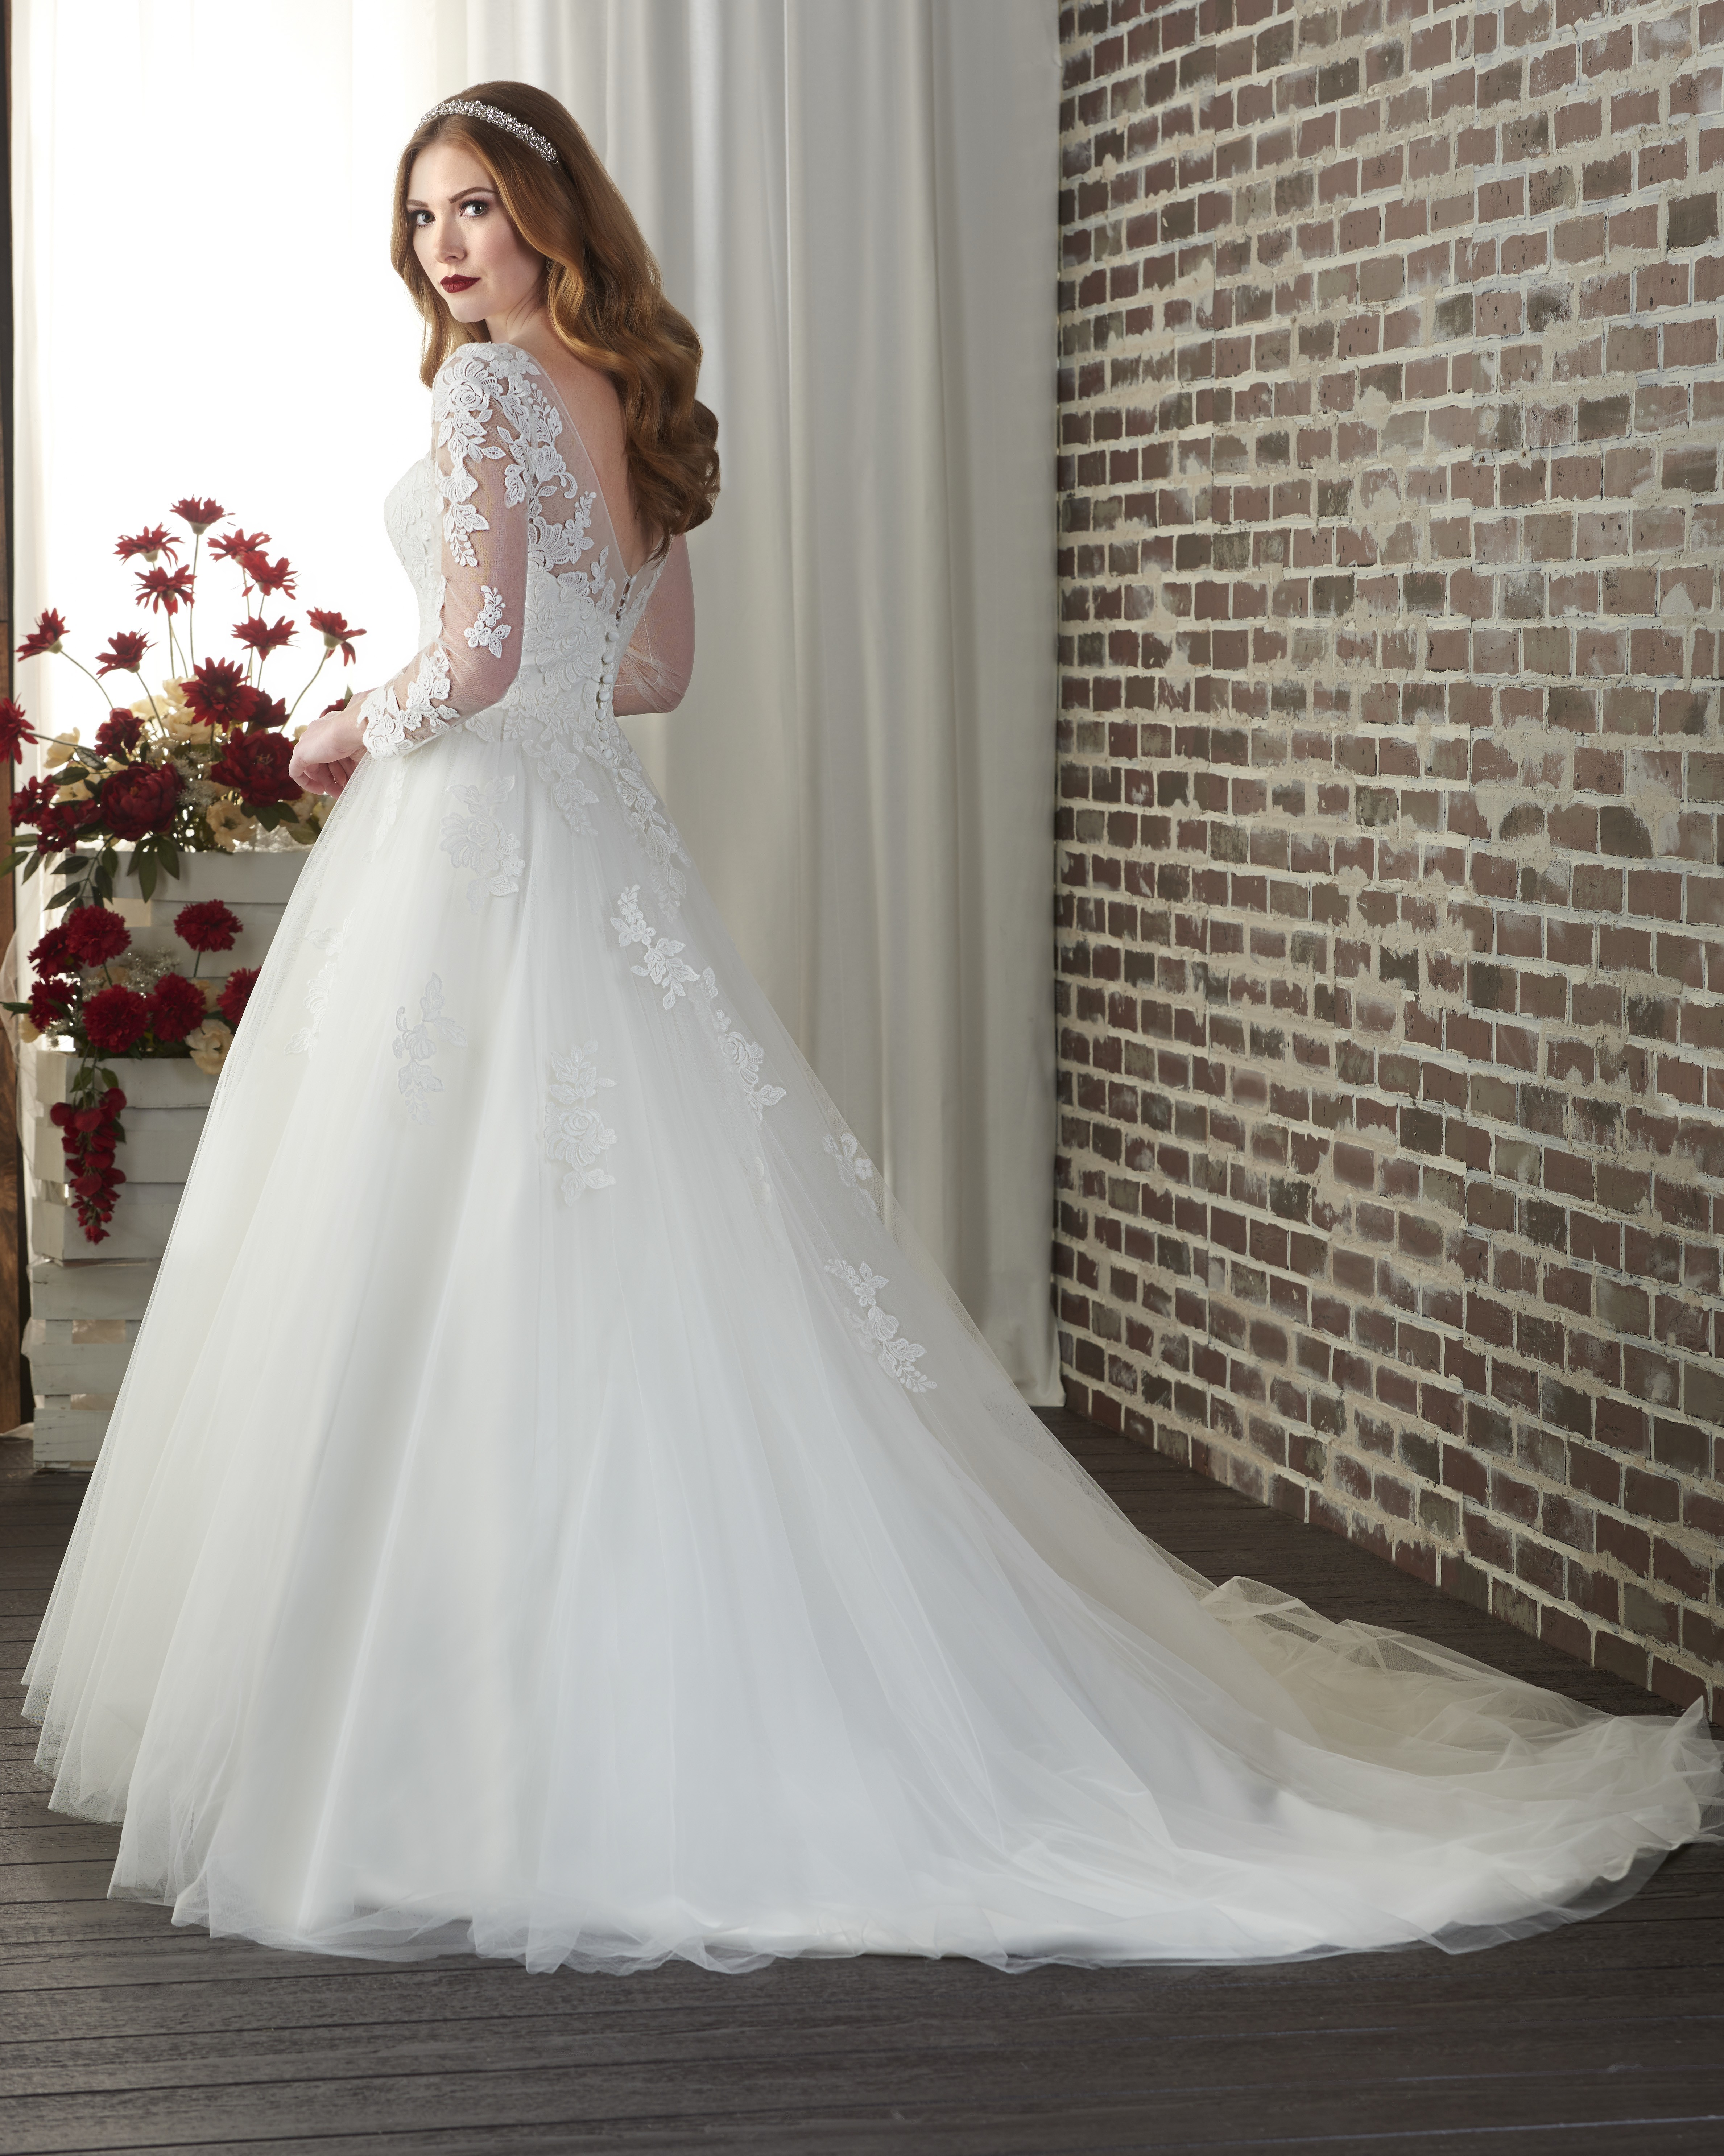 Transporting Wedding Dress For Destination Wedding : Destination wedding dresses from the love collection by